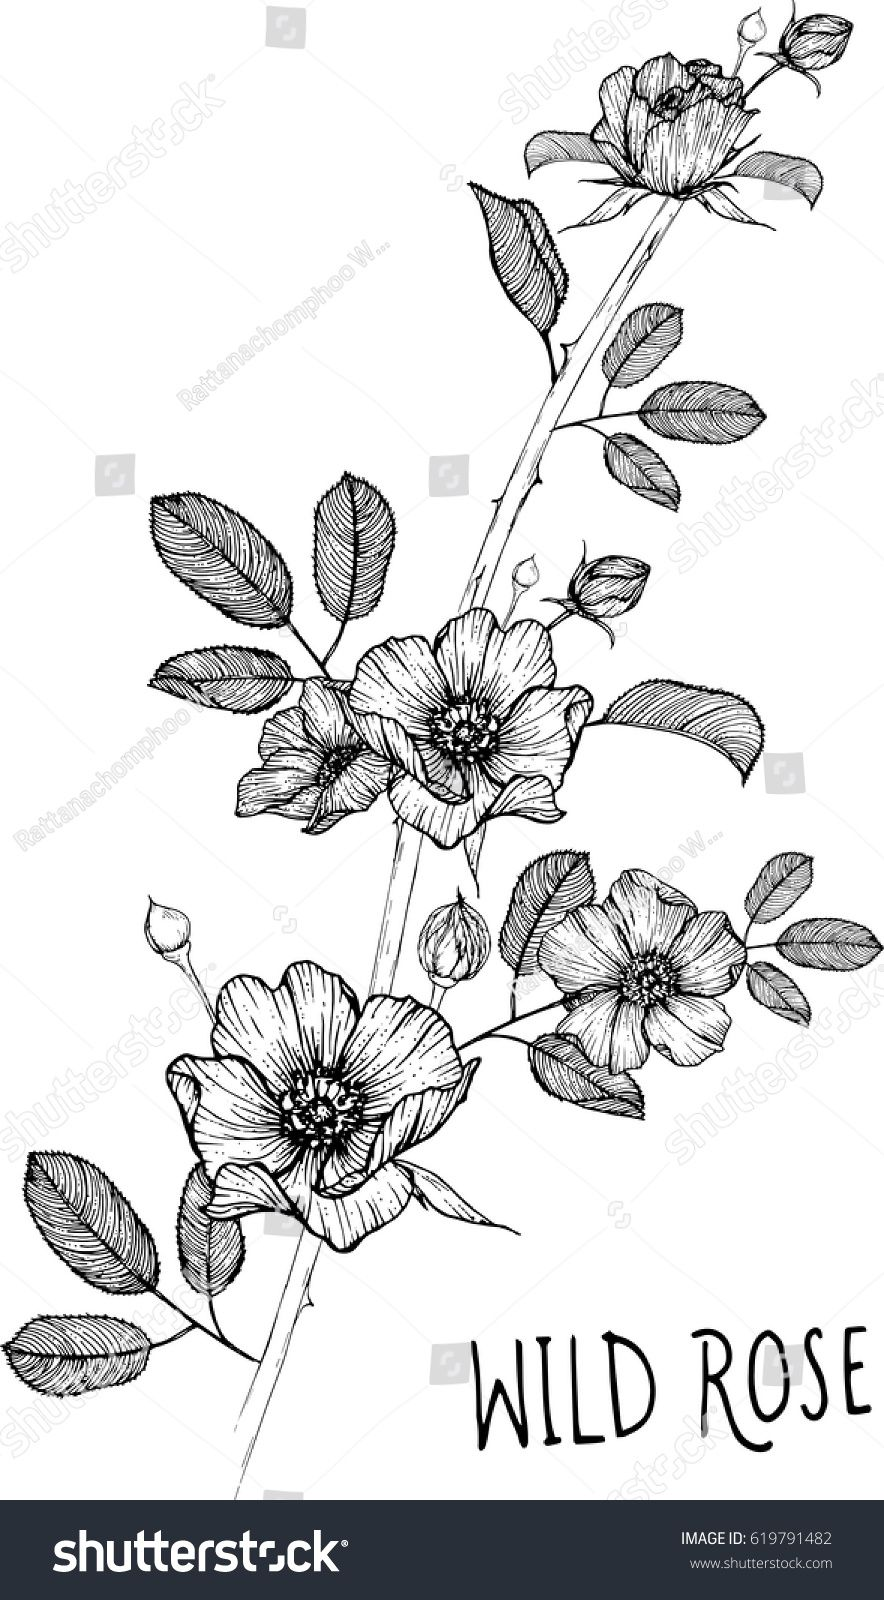 Drawing Flower Wild Rose Clip Art Vector Or Illustration Wild Rose Tattoo Wildflower Drawing Flower Line Drawings